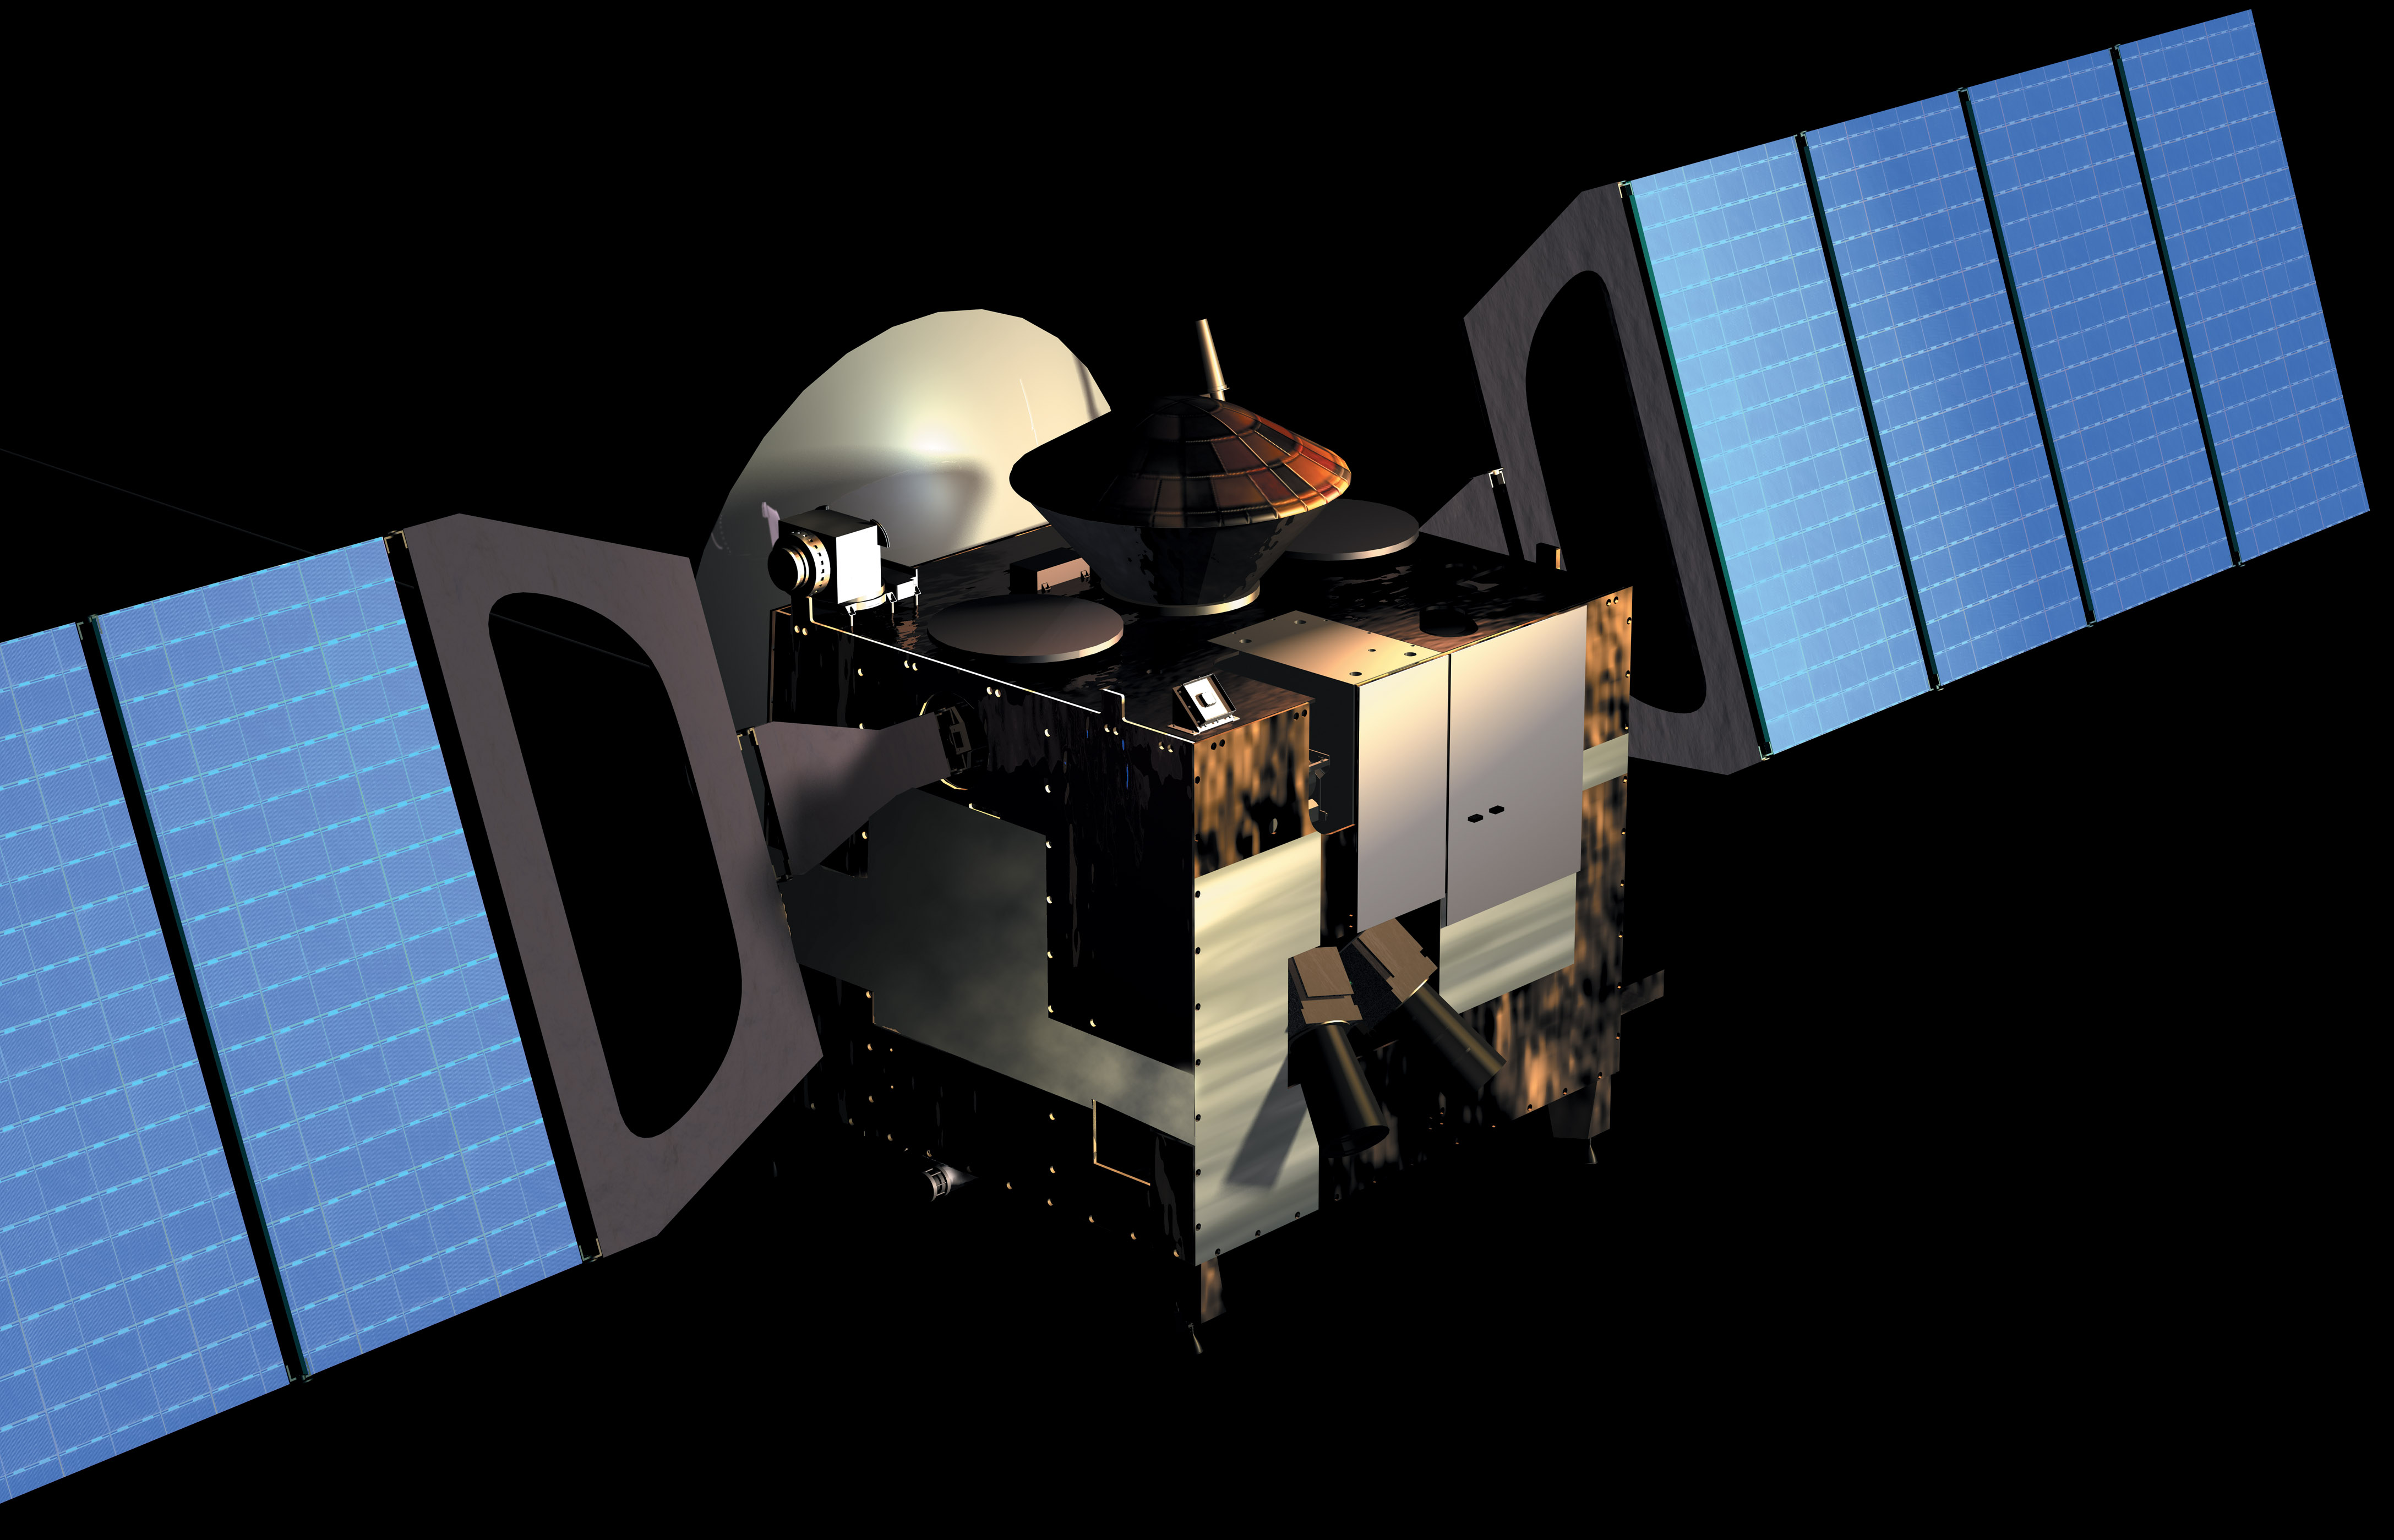 esa science amp technology mars express - HD 4349×2798